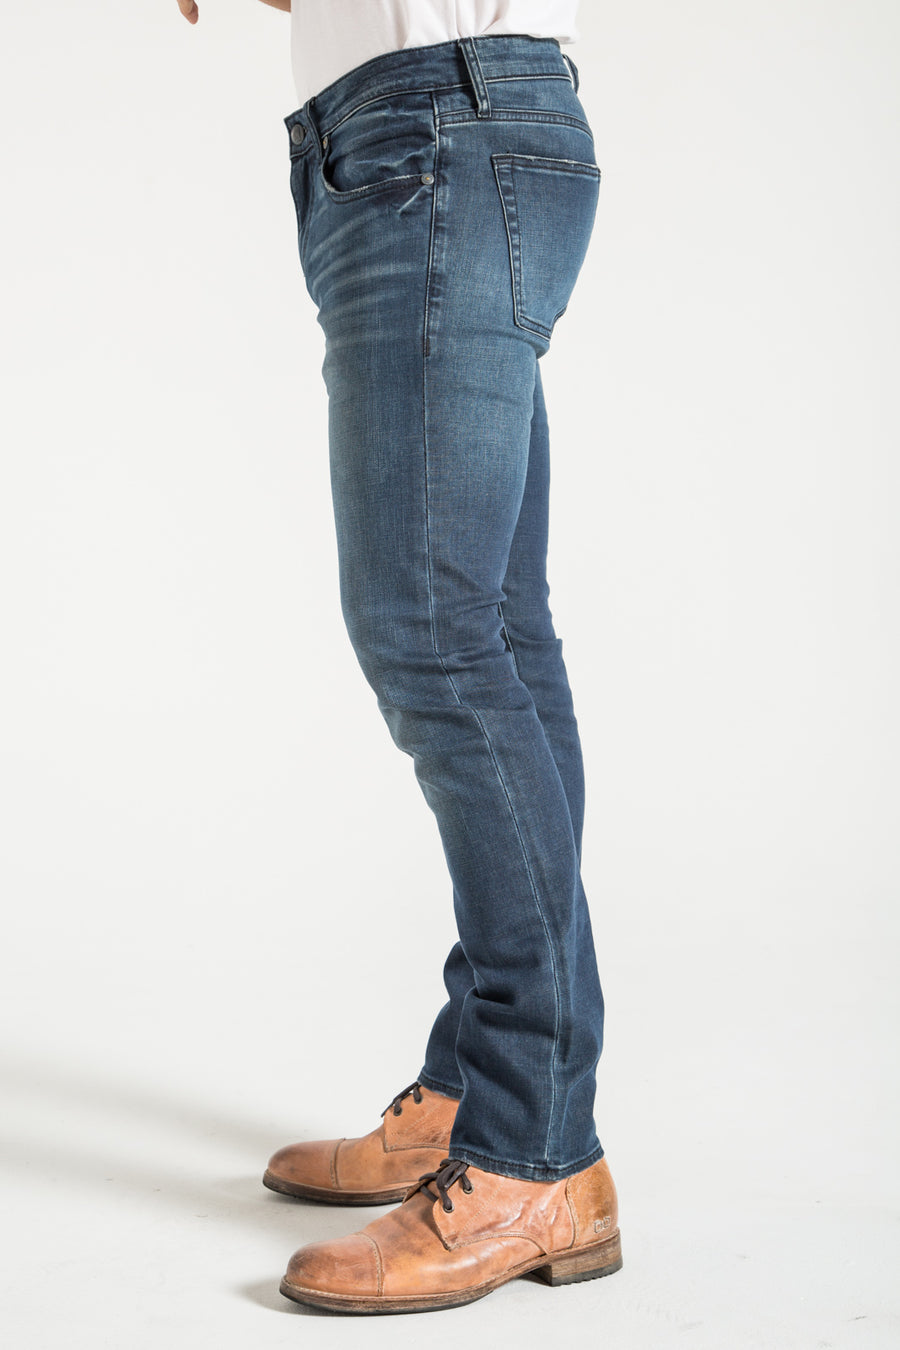 BARFLY SLIM IN HARLEY DENIM